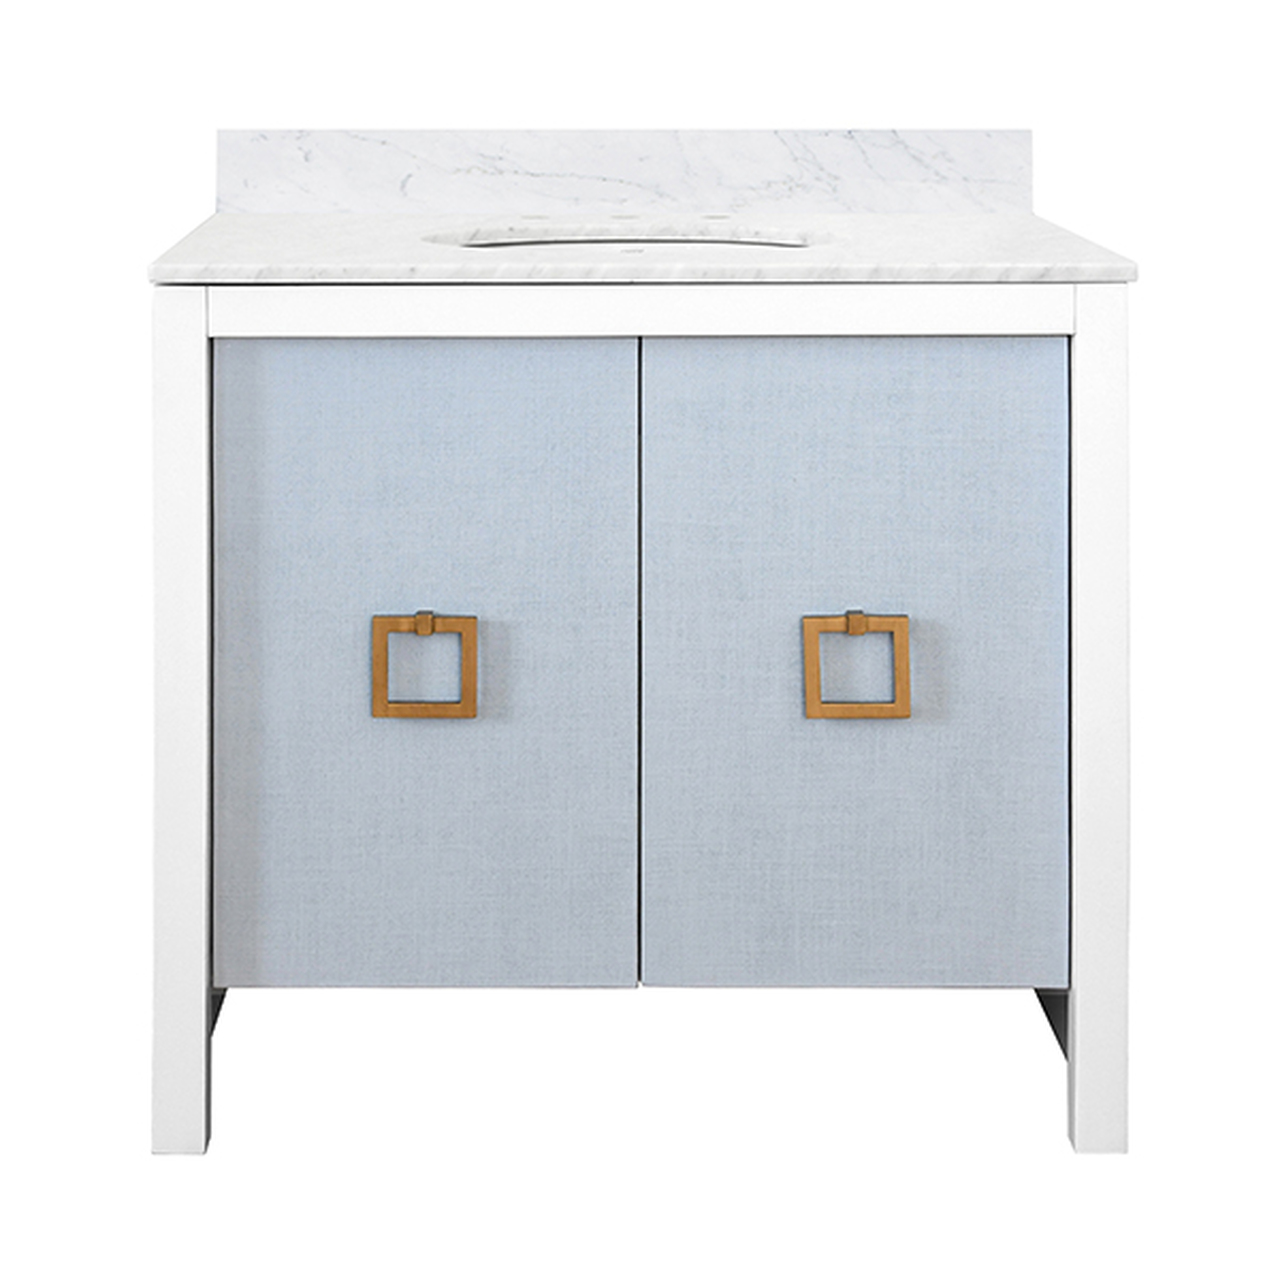 """36"""" Issac Edwards Collection Bath Vanity in White Finsih with Light Blue Door with White Marble Top and Porcelain Sink"""